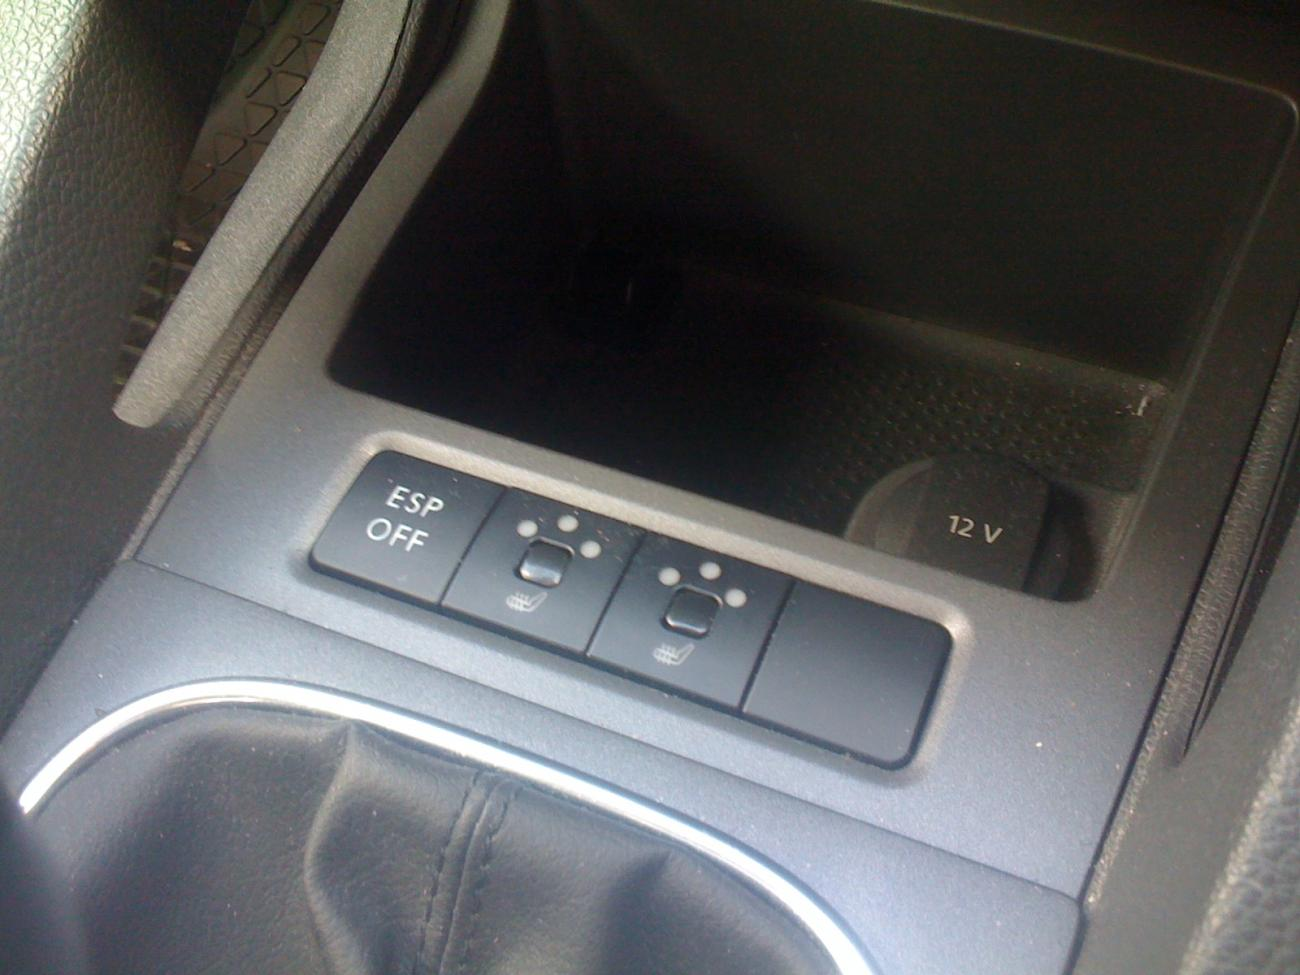 Golf mk6 heated seats retrofit